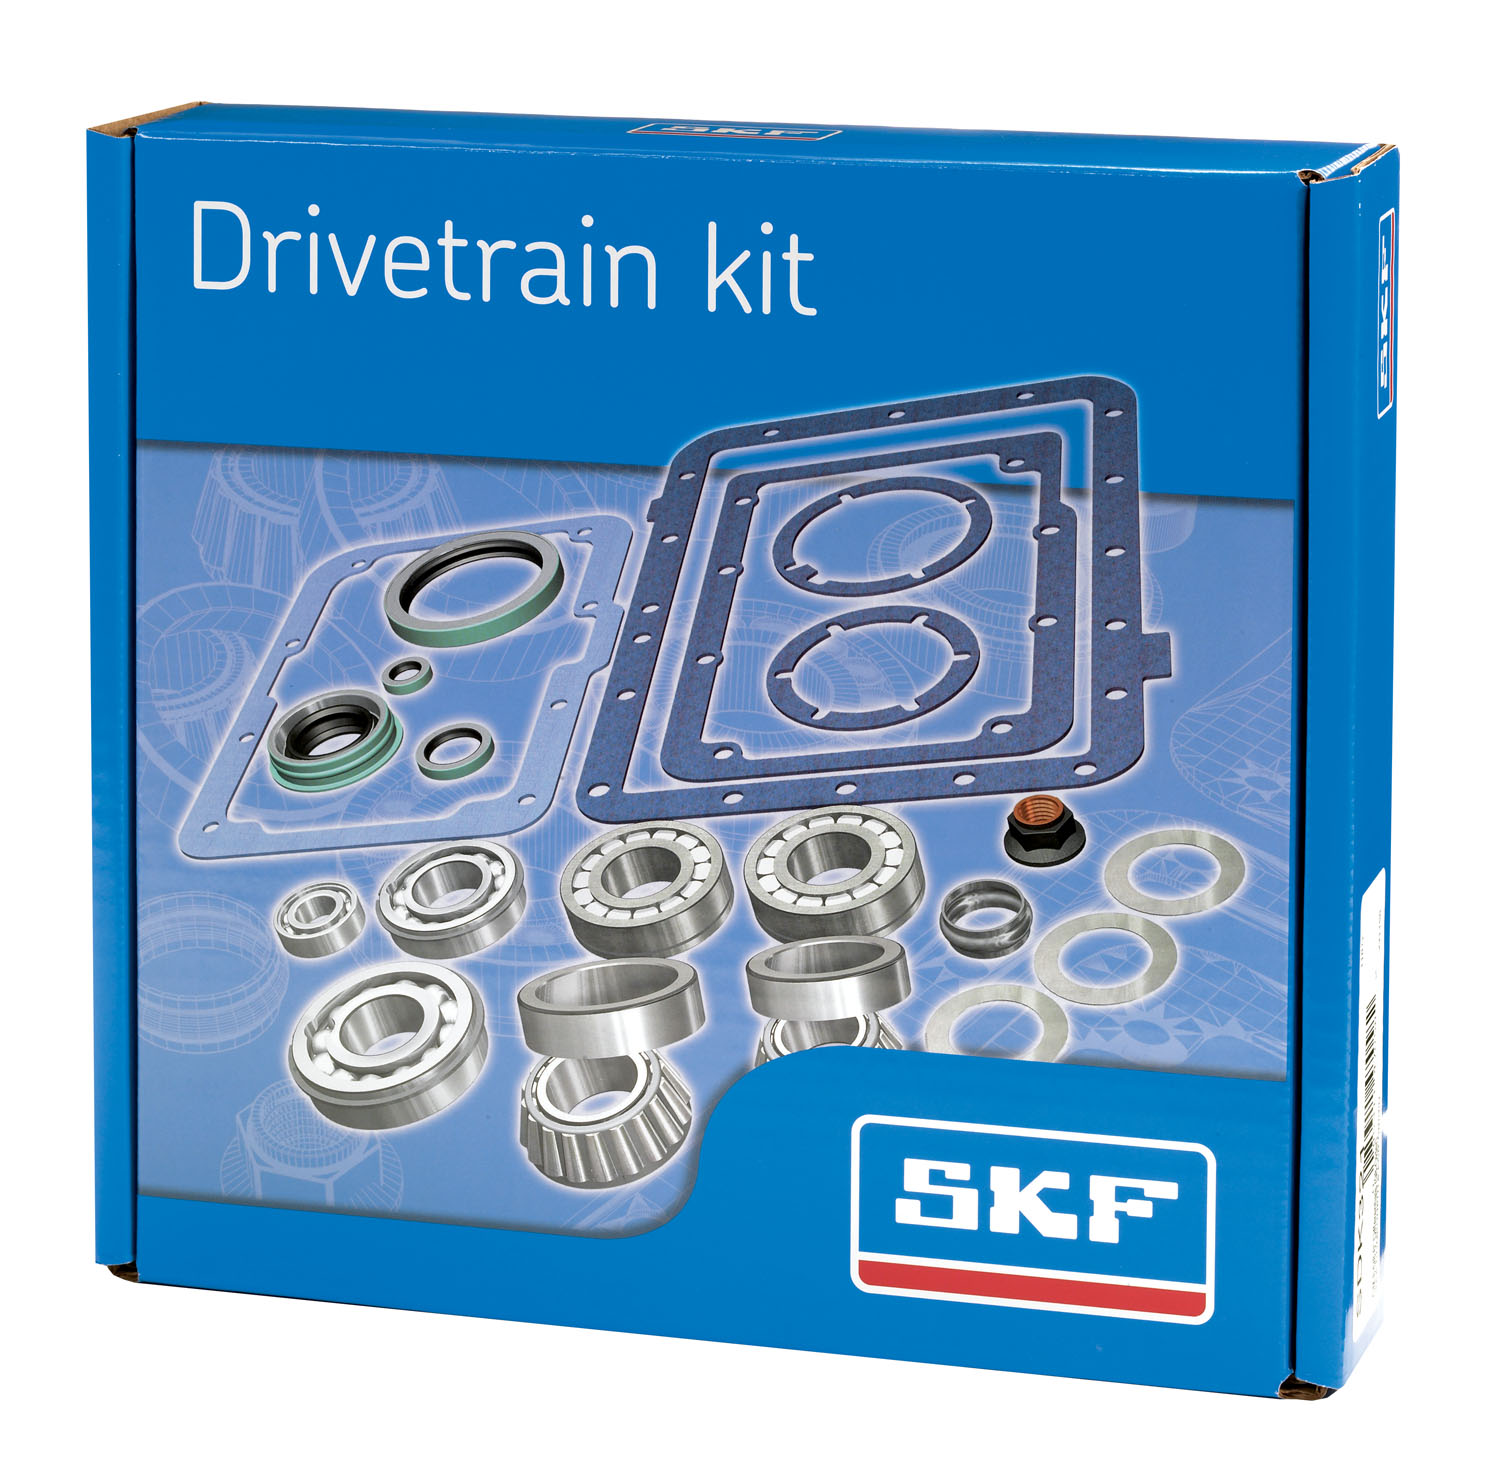 SKF adds 31 new differential kits to drivetrain line